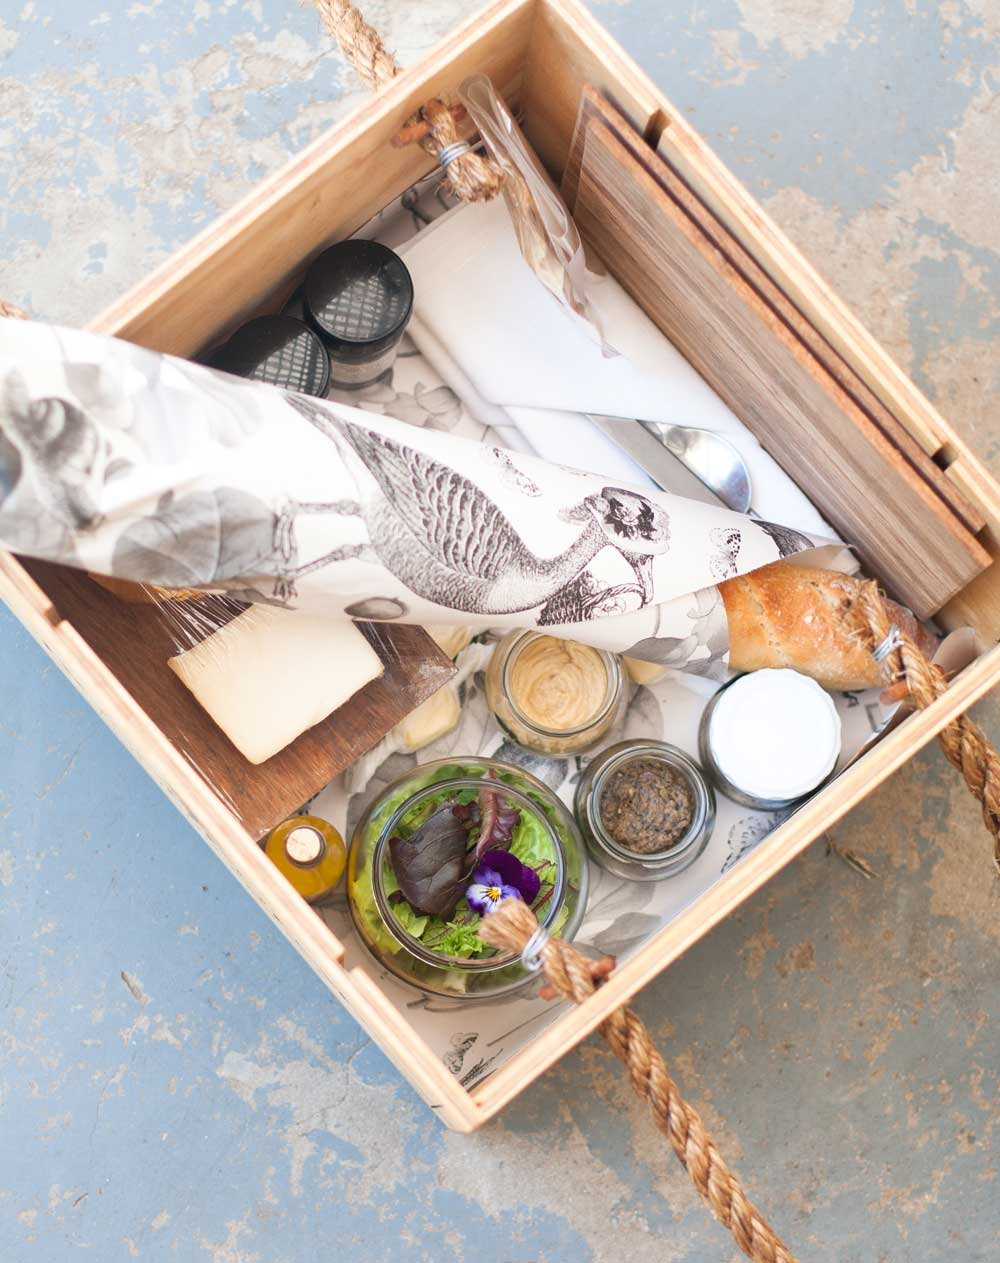 Picnicking at Boschendal whats in the box